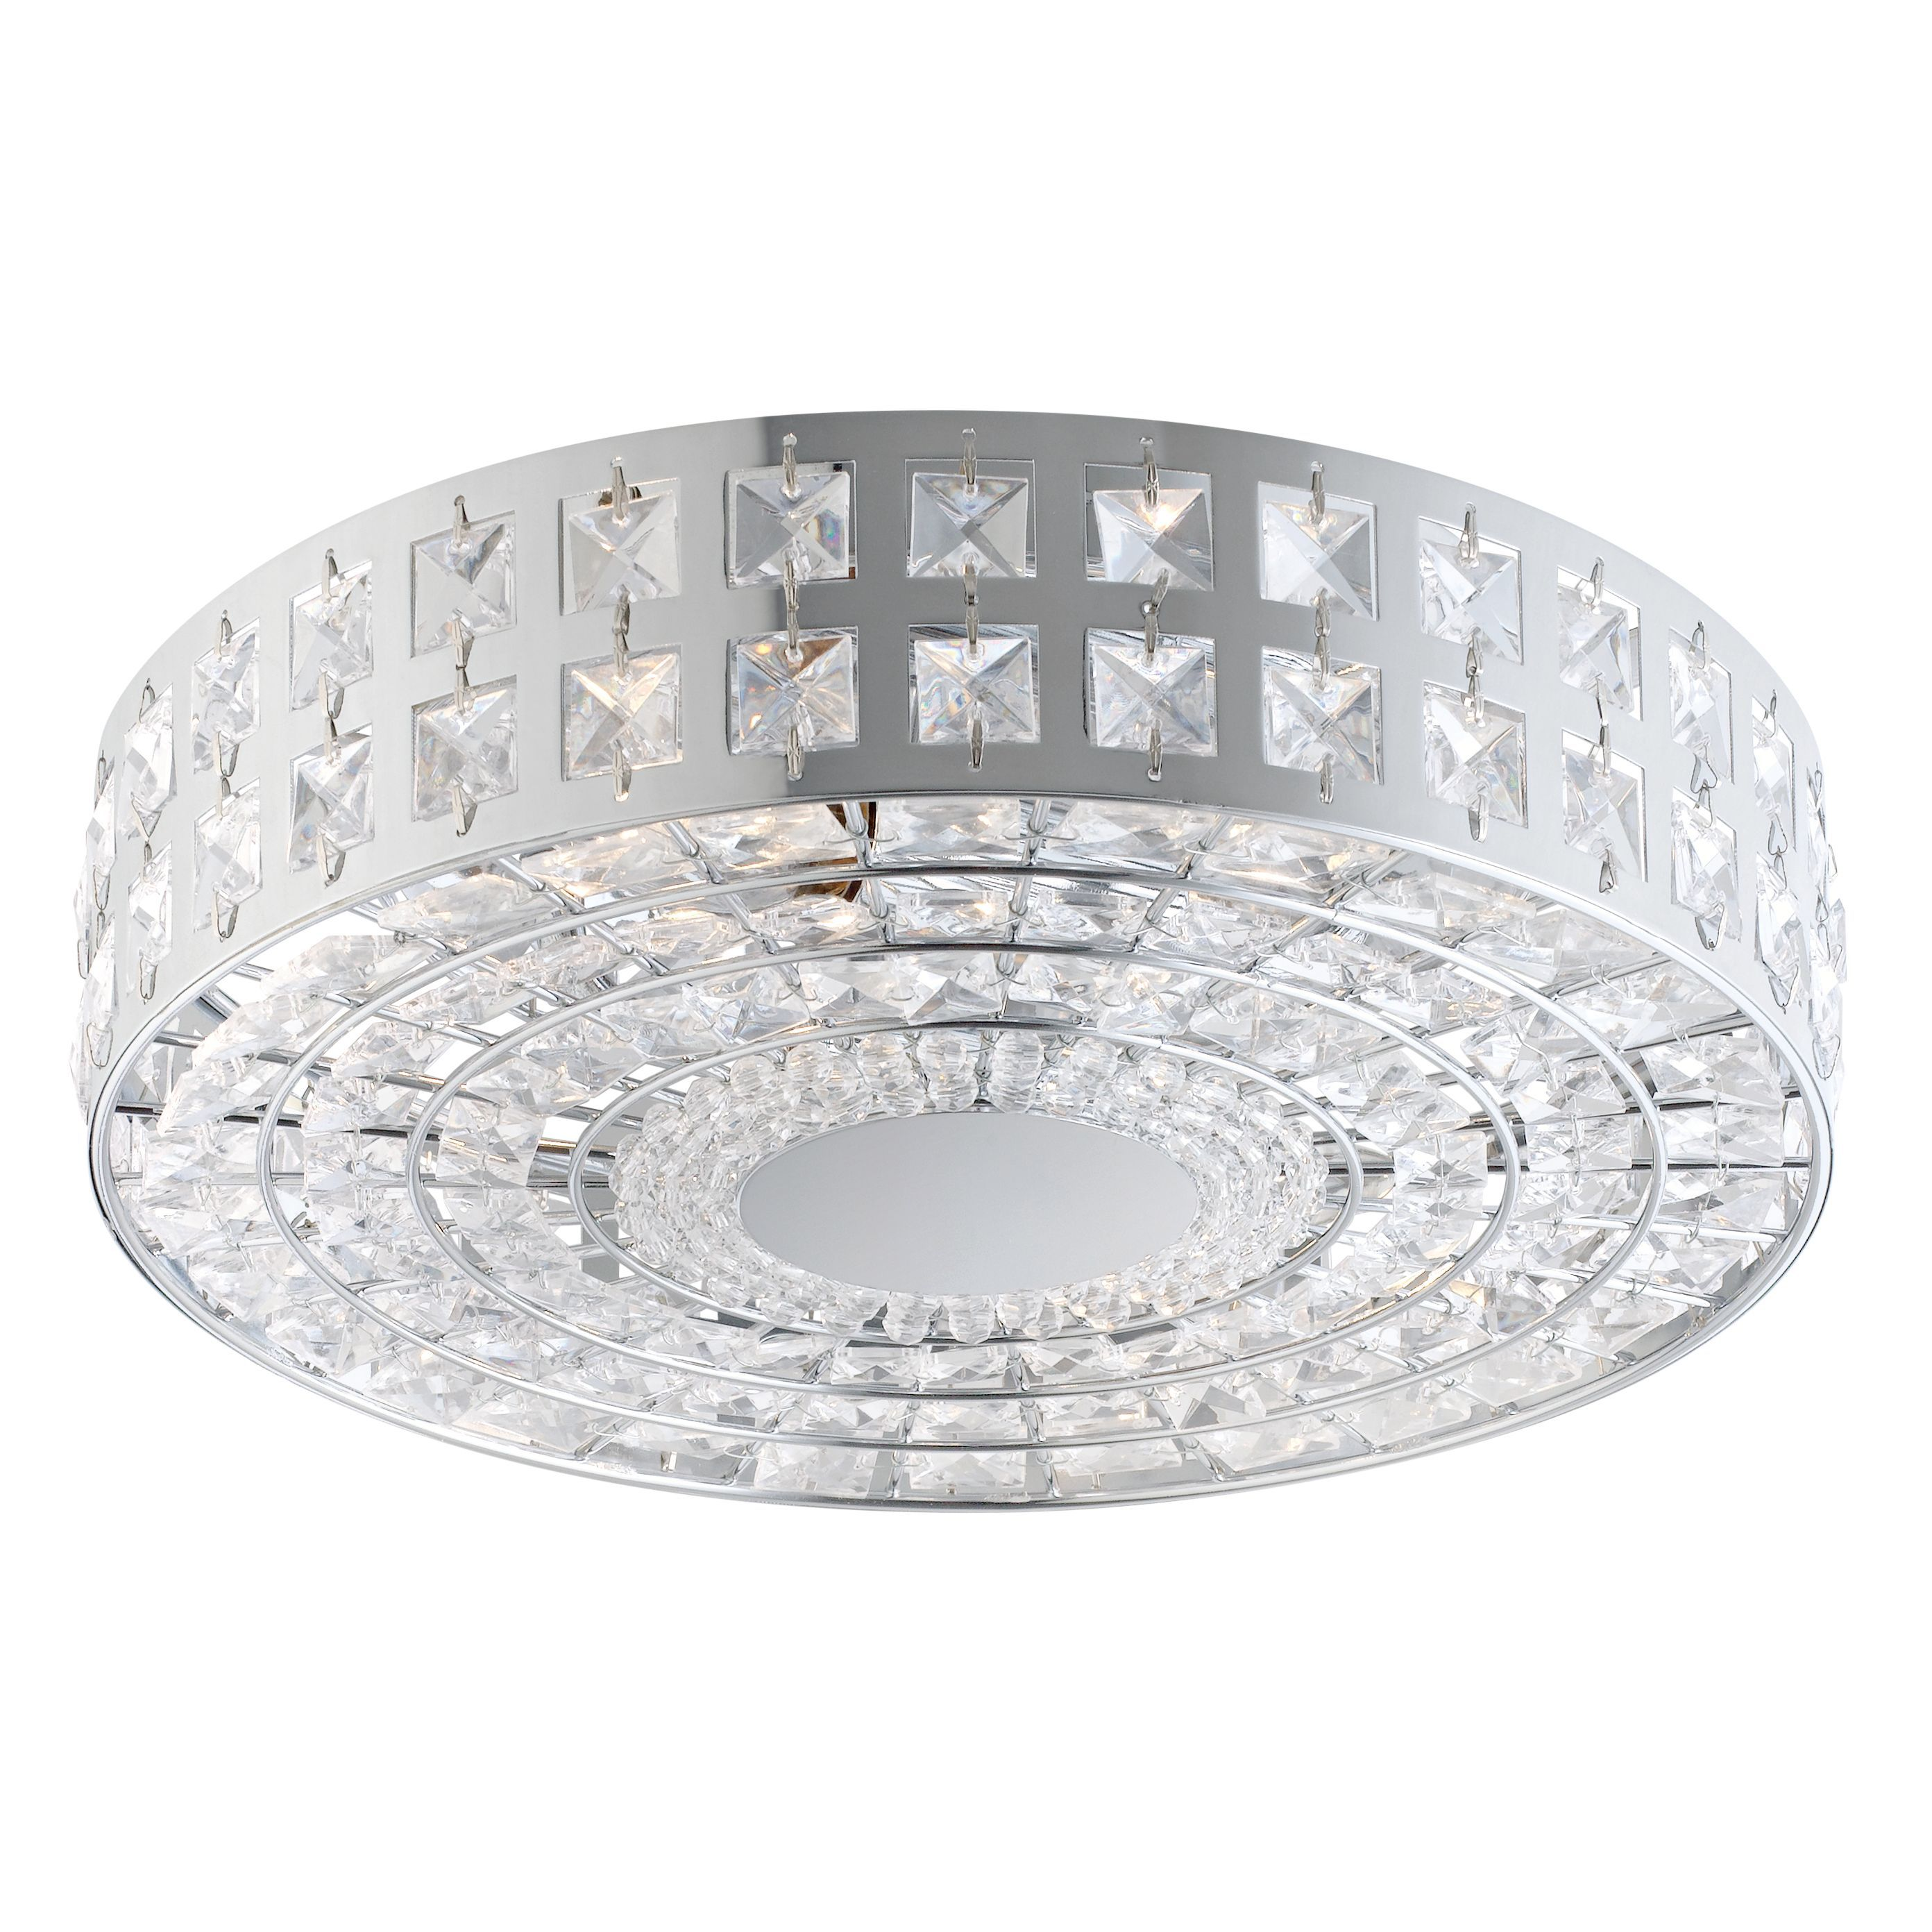 Bathroom Ceiling Lights At B&Q palena jewelled silver 2 lamp ceiling light | departments | diy at b&q